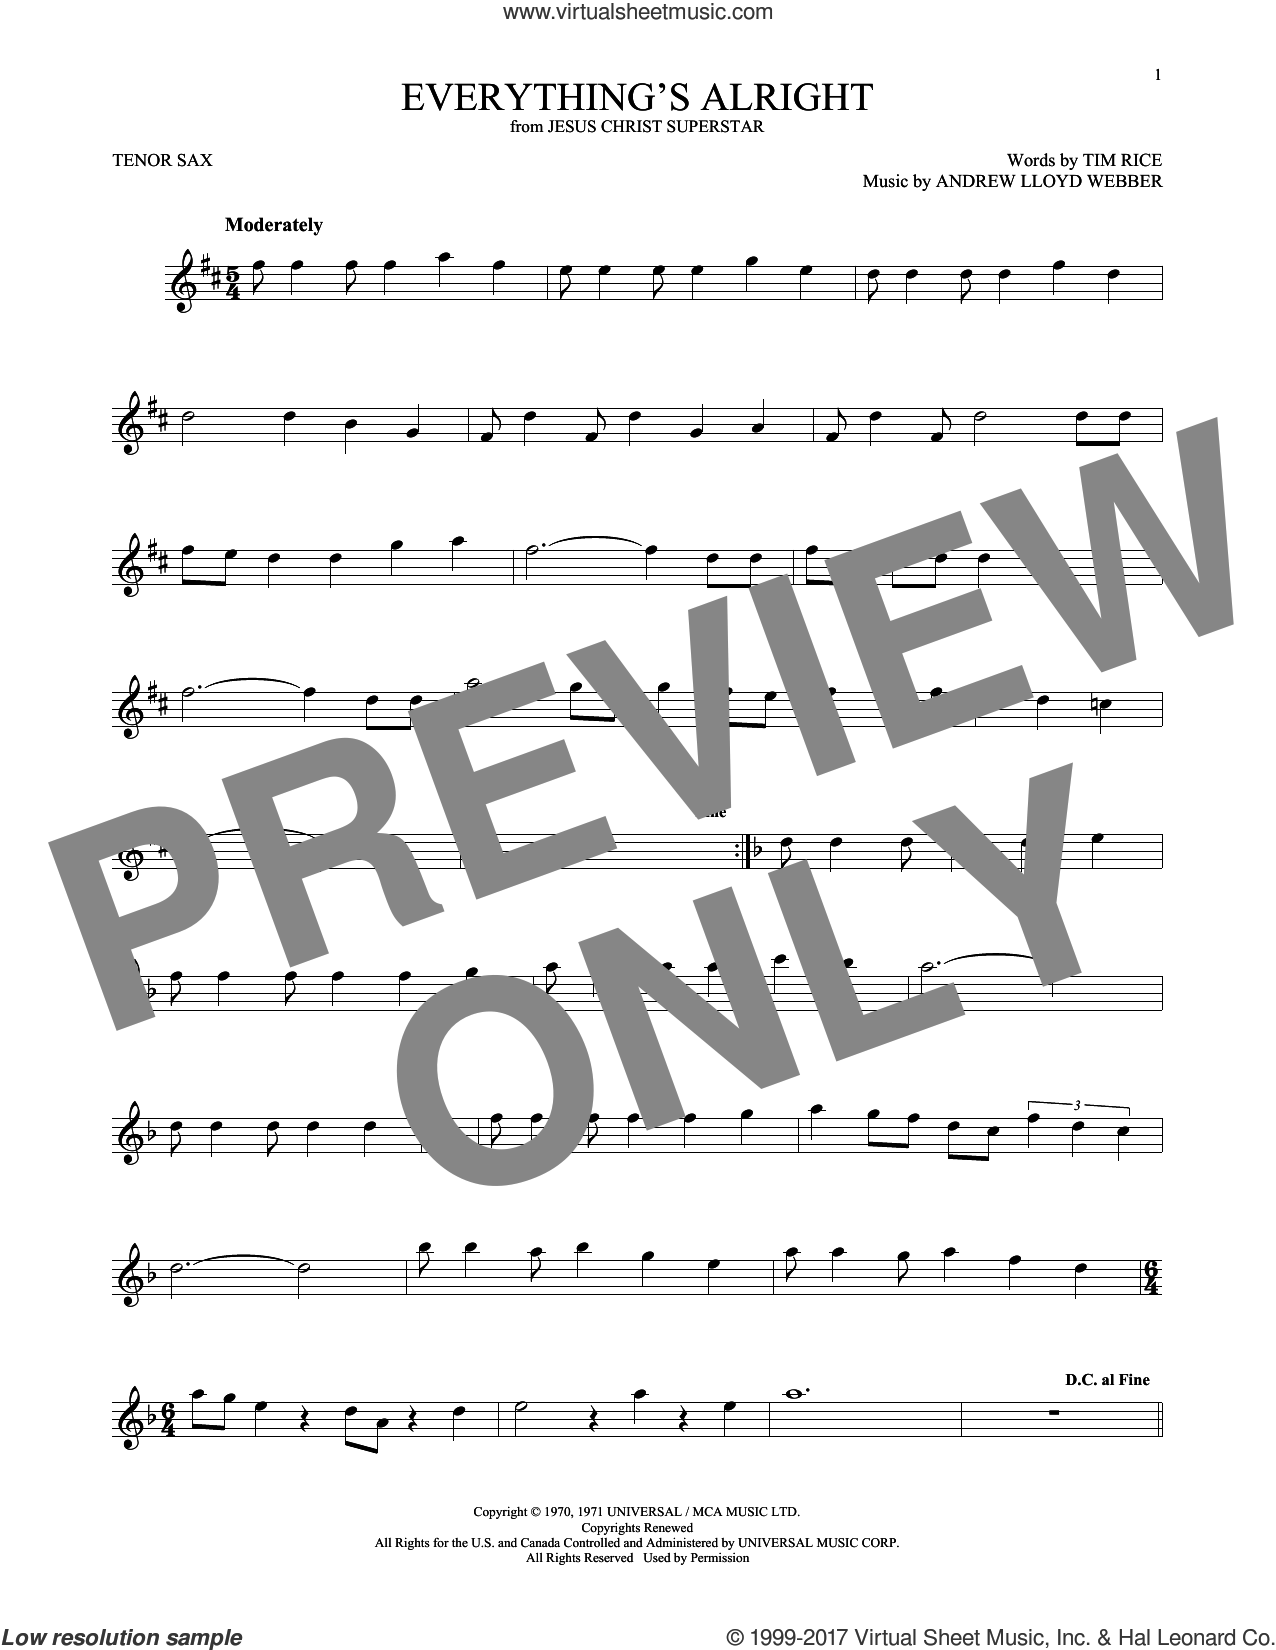 Everything's Alright (from Jesus Christ Superstar) sheet music for tenor saxophone solo by Andrew Lloyd Webber, Yvonne Elliman and Tim Rice, intermediate skill level